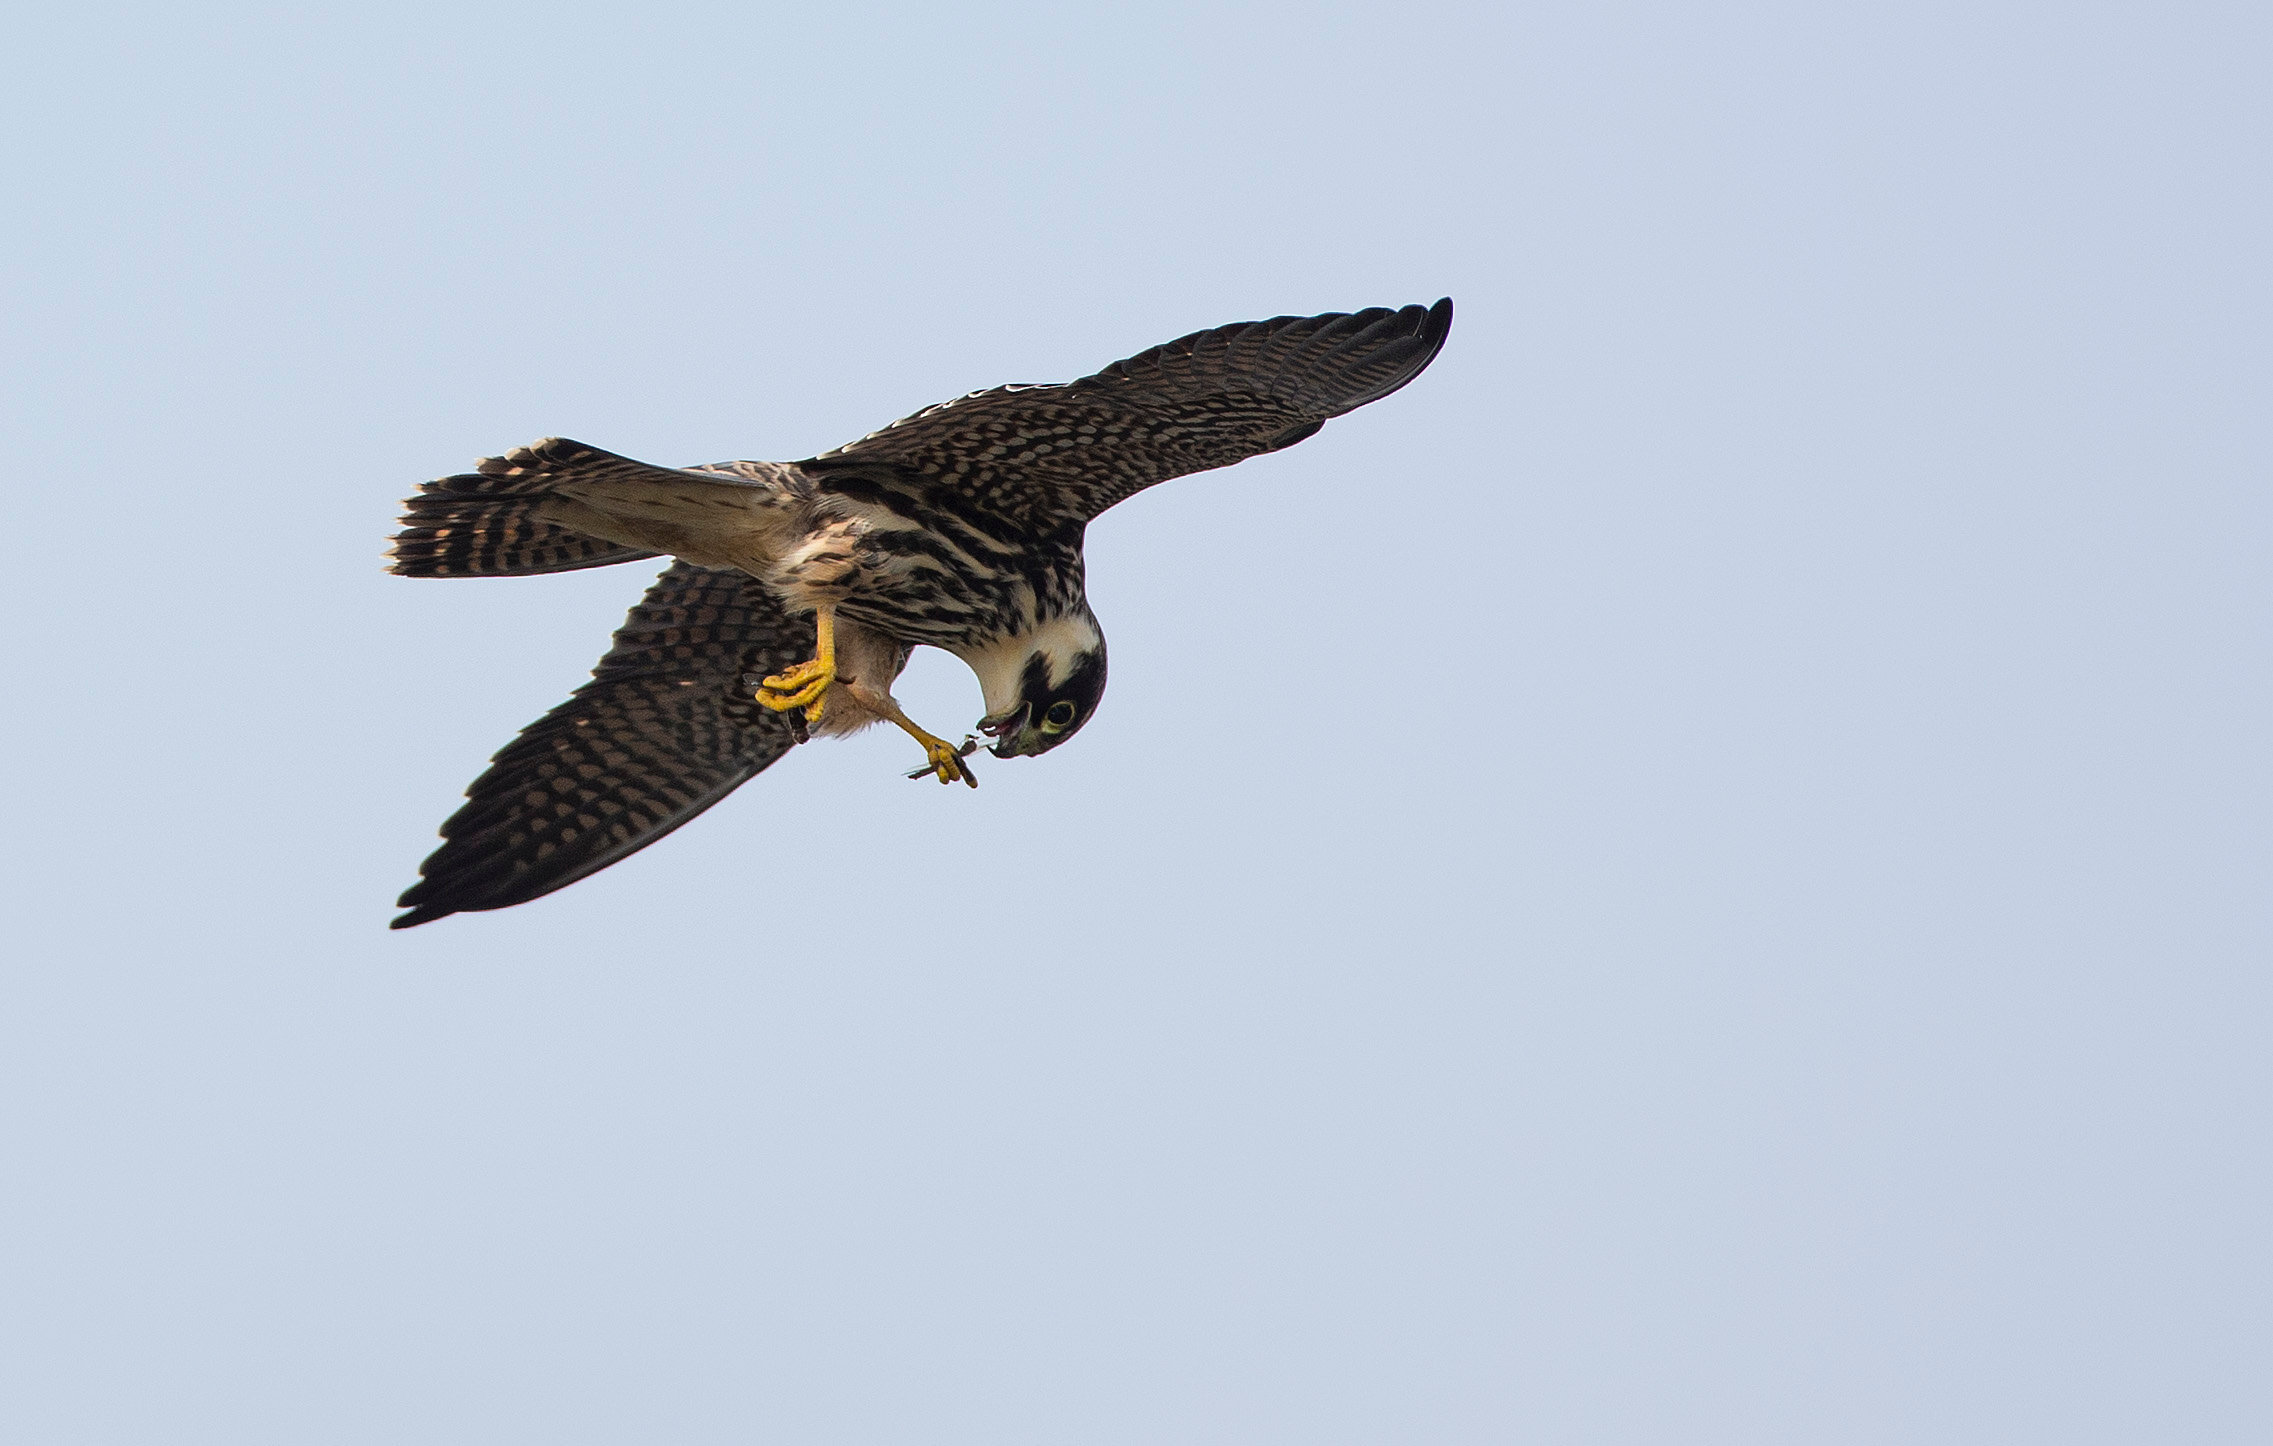 Hobby eating dragonflies